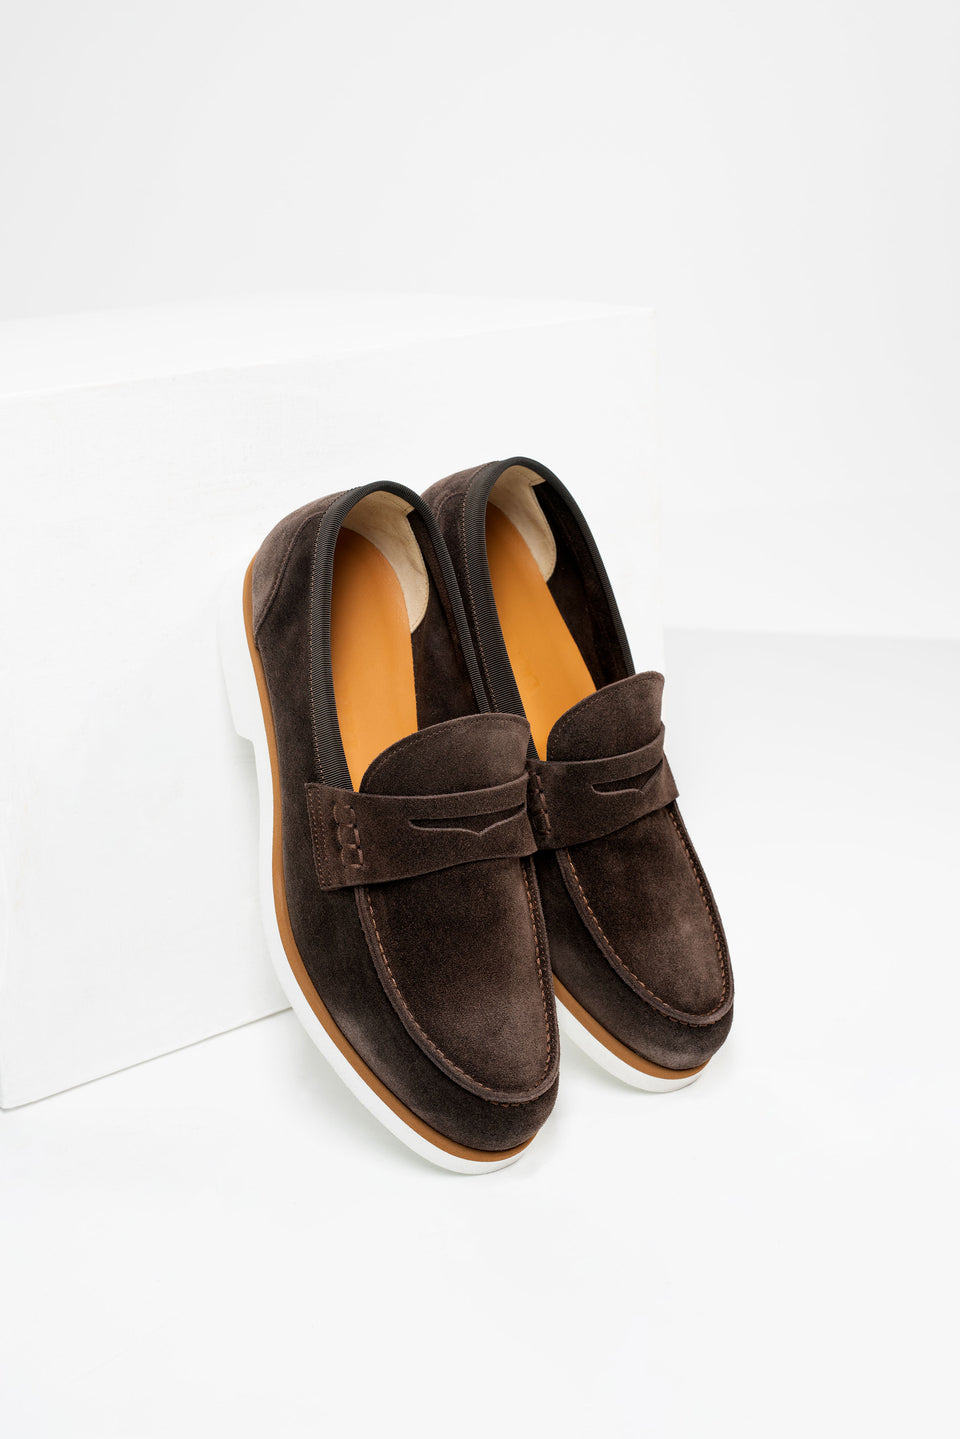 002 - Loafer in Brown Suede